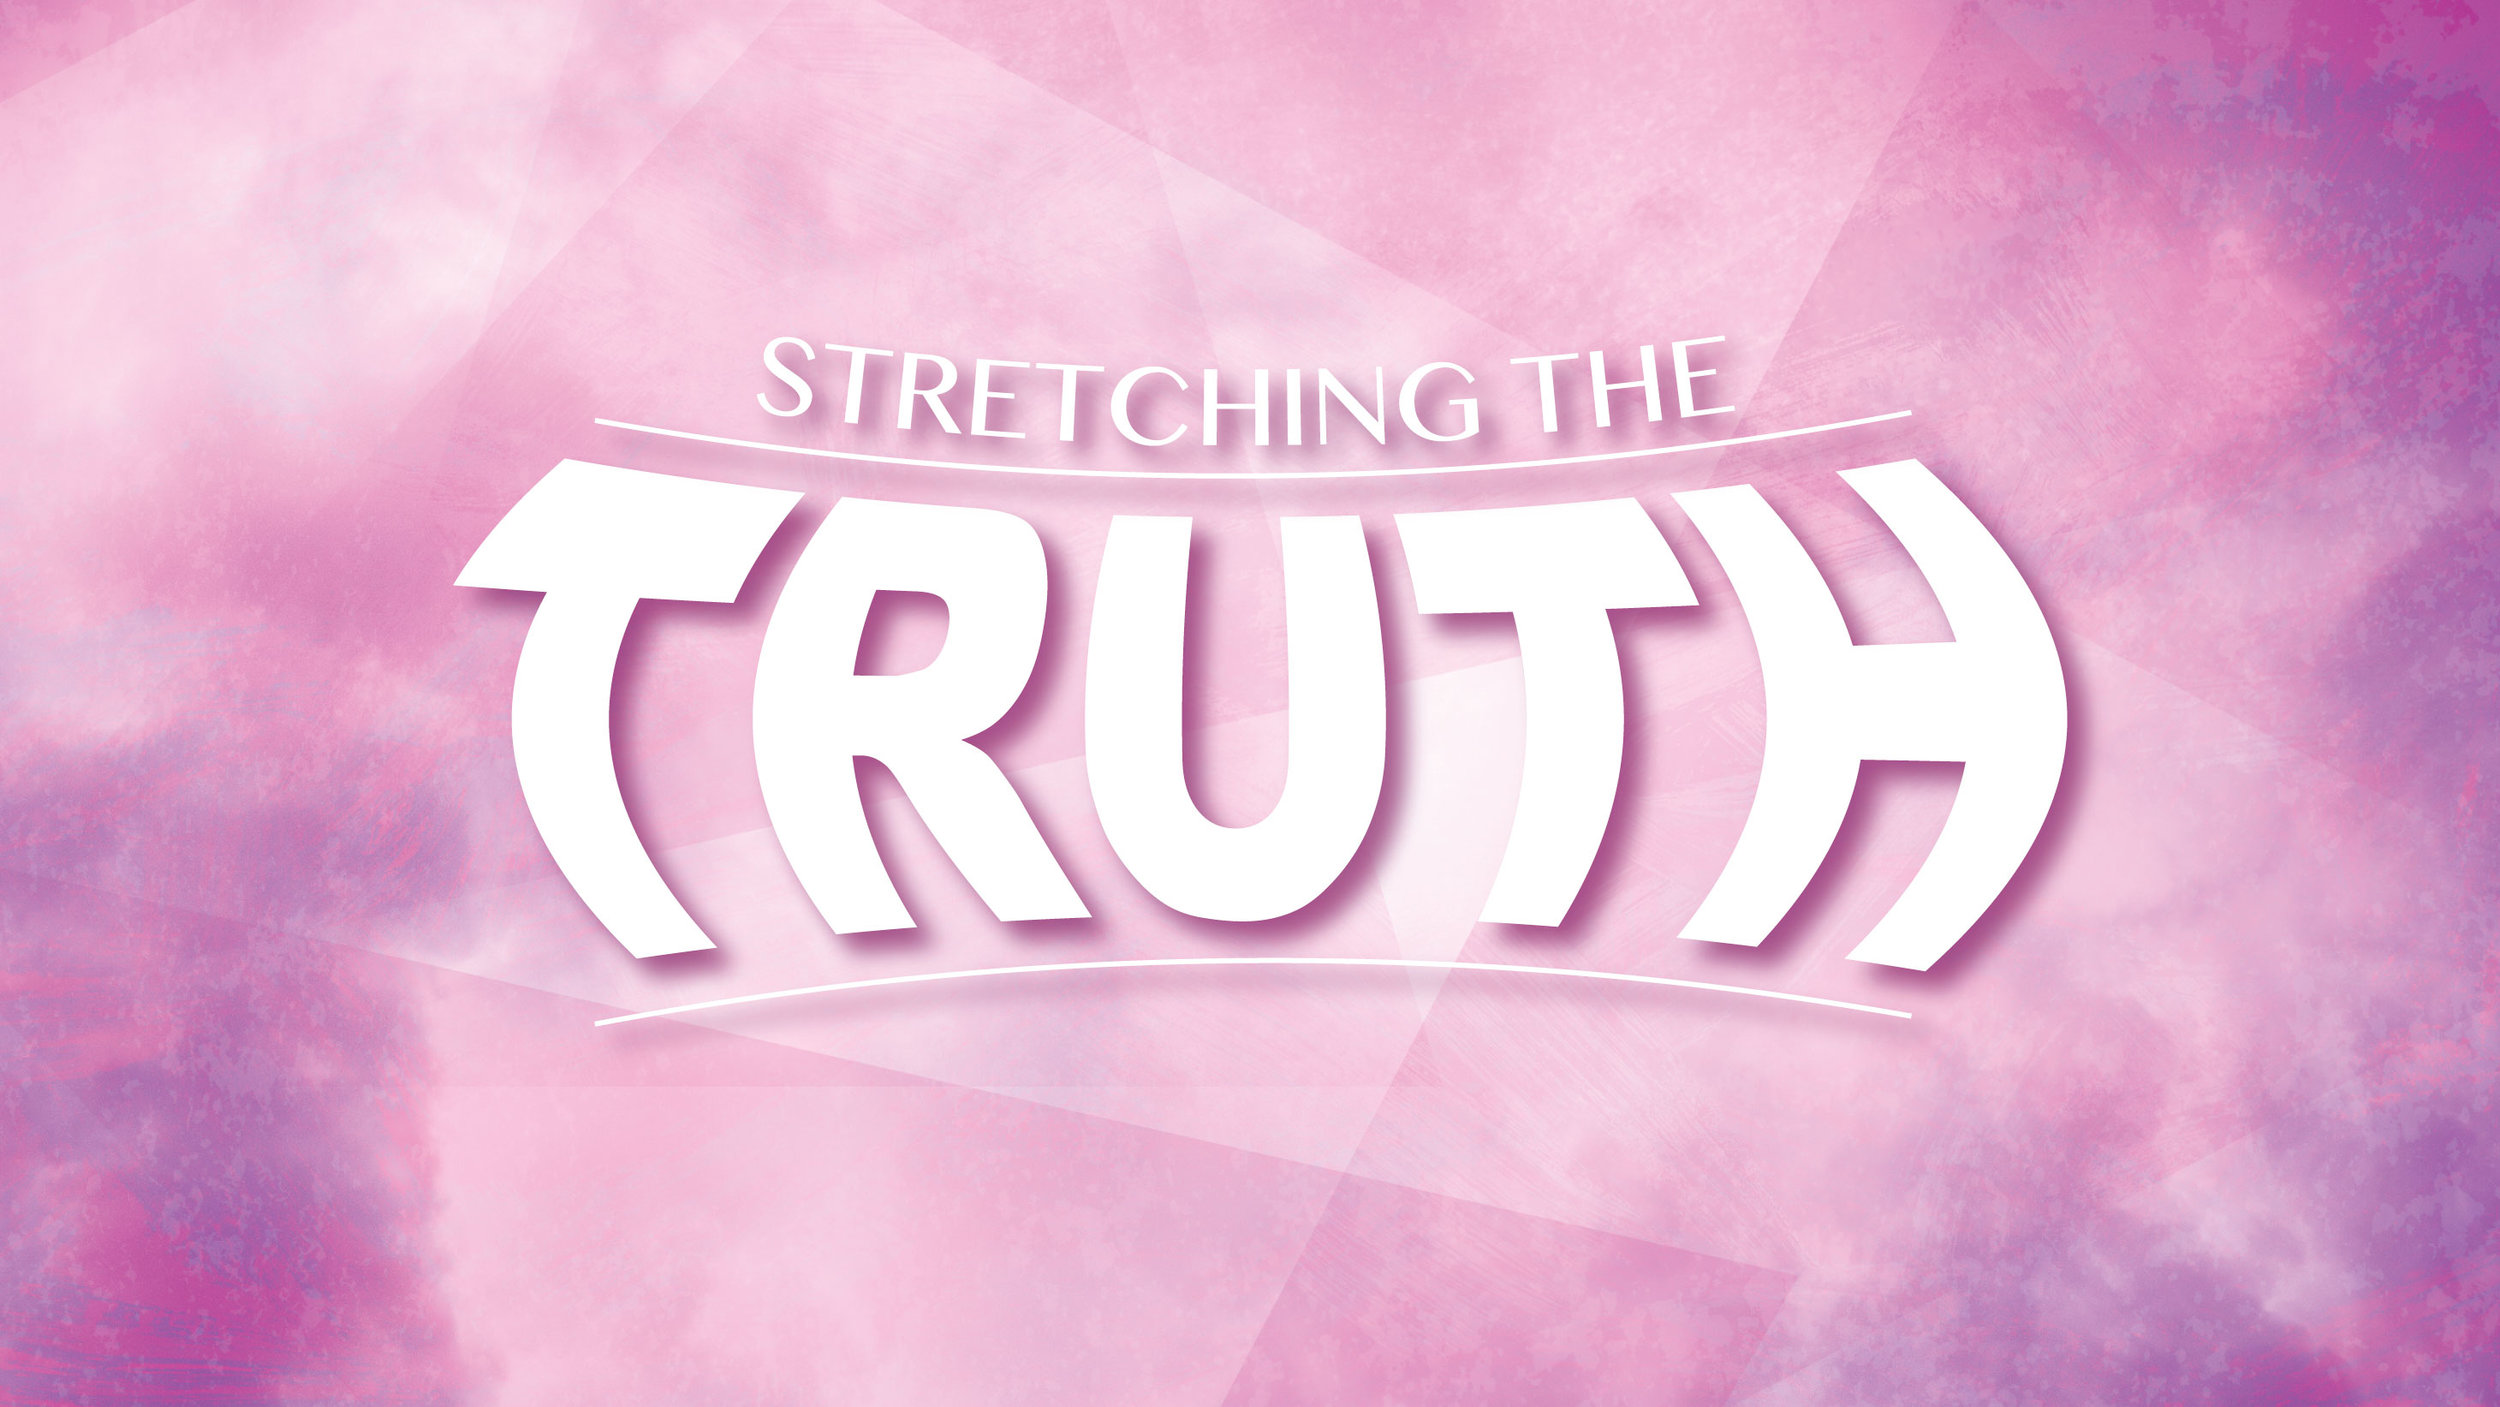 Stretching-The-Truth.jpg